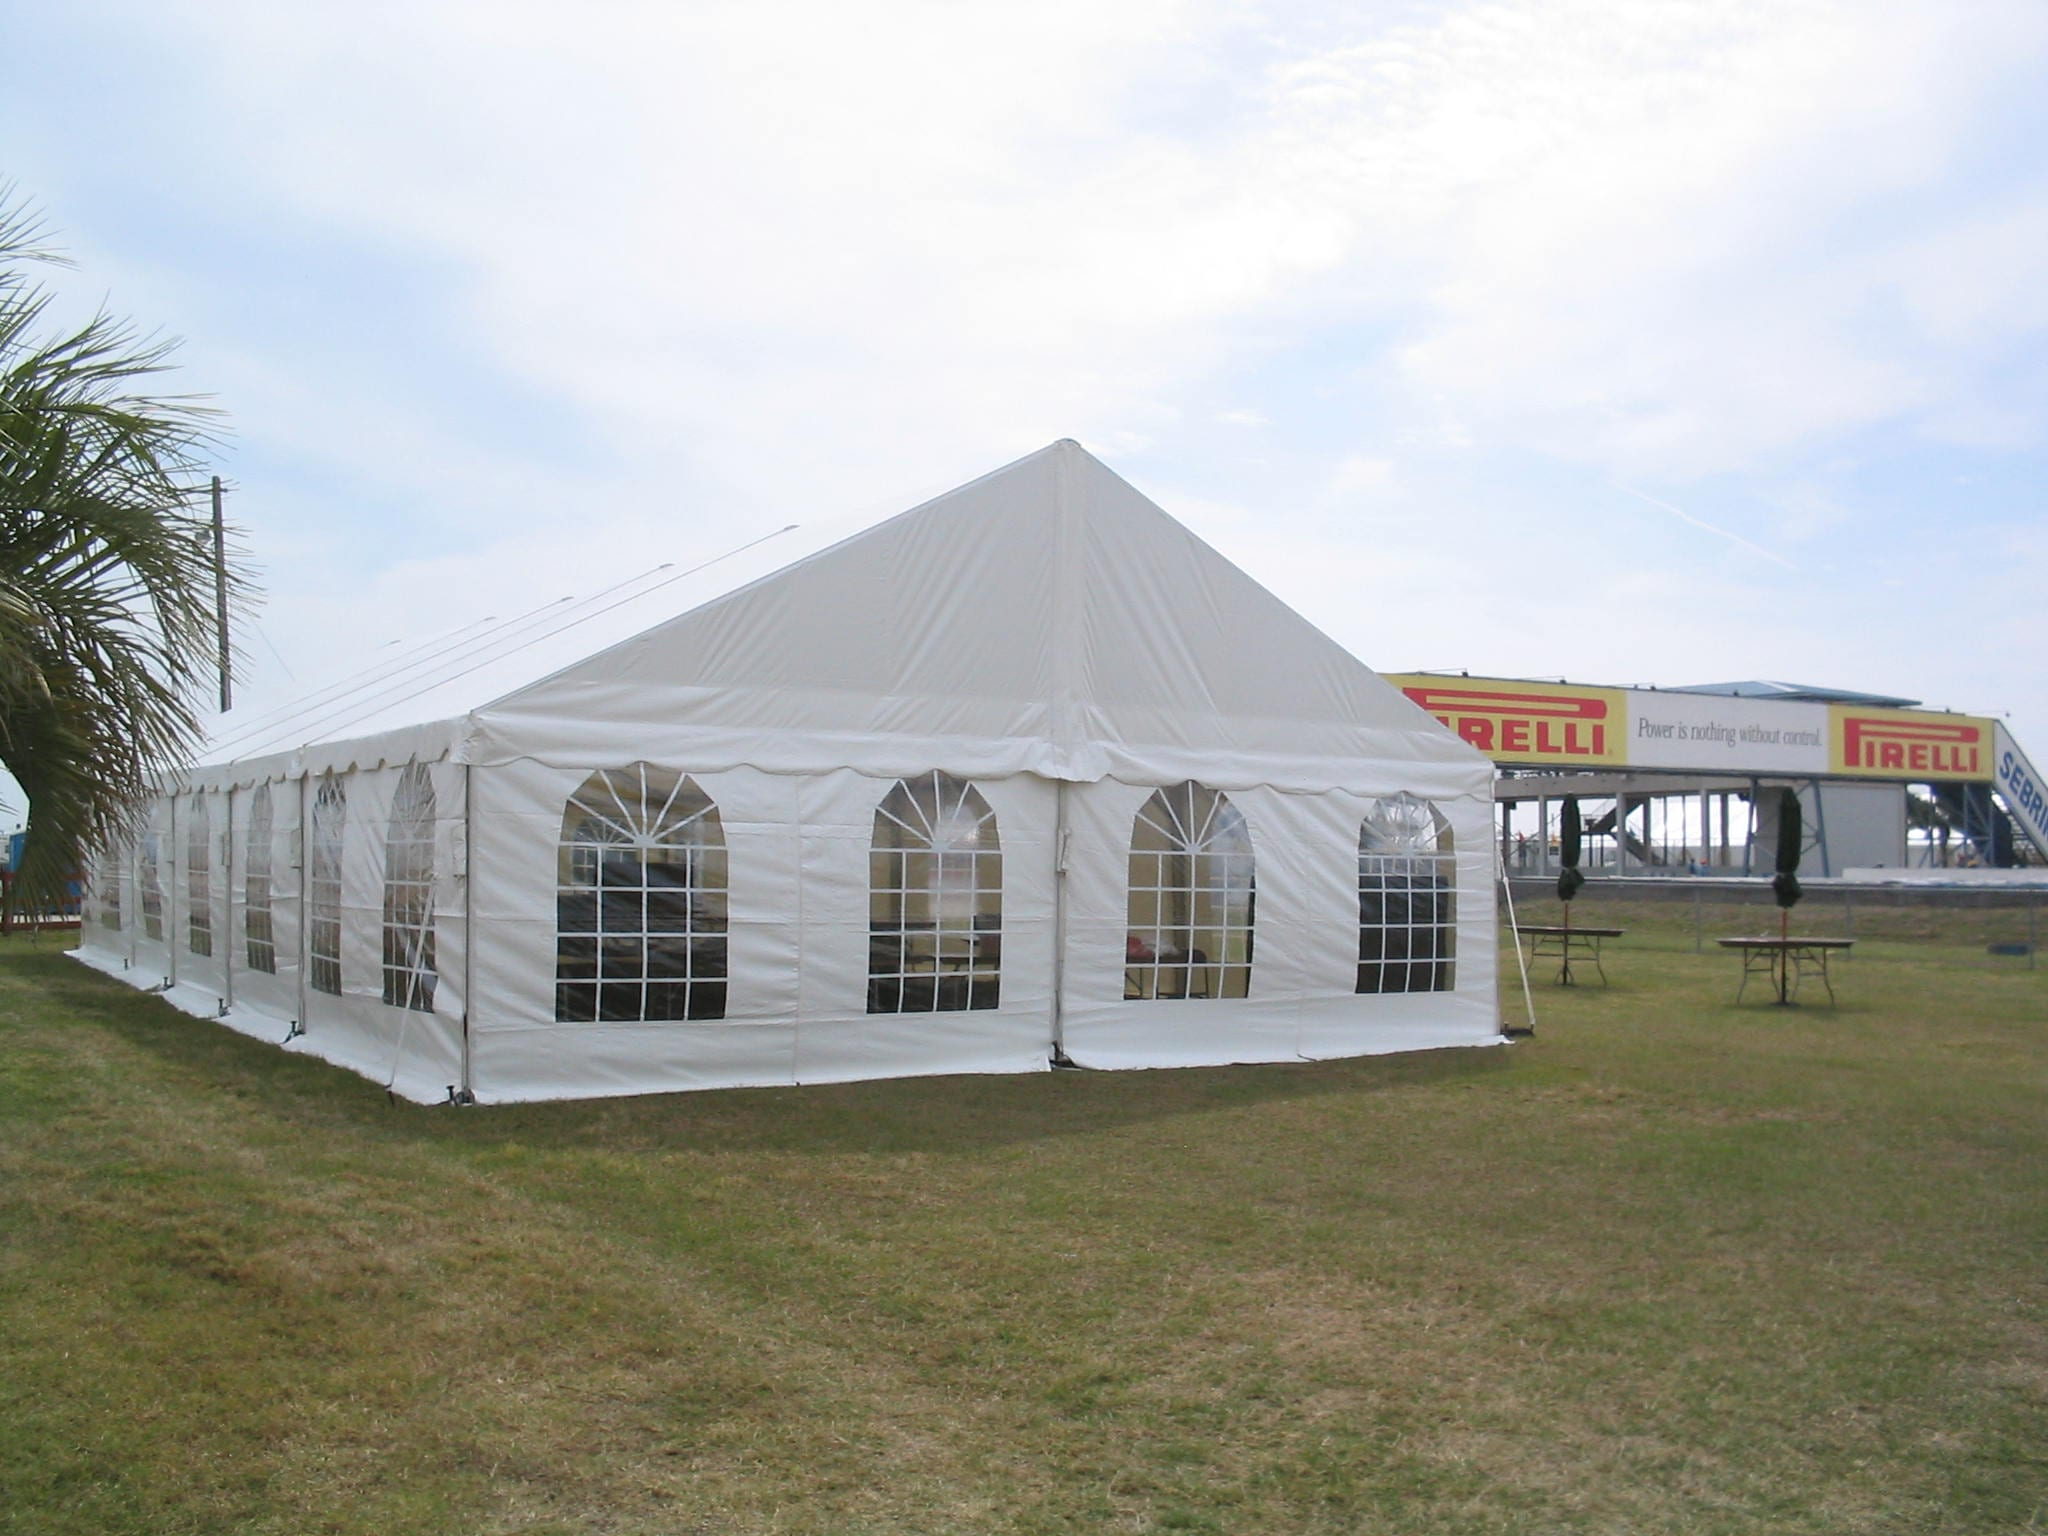 8u0027 high window sidewalls in a 30u0027 x 60u0027 frame tent & Eventmakers | 8u0027 high window sidewalls in a 30u0027 x 60u0027 frame tent.